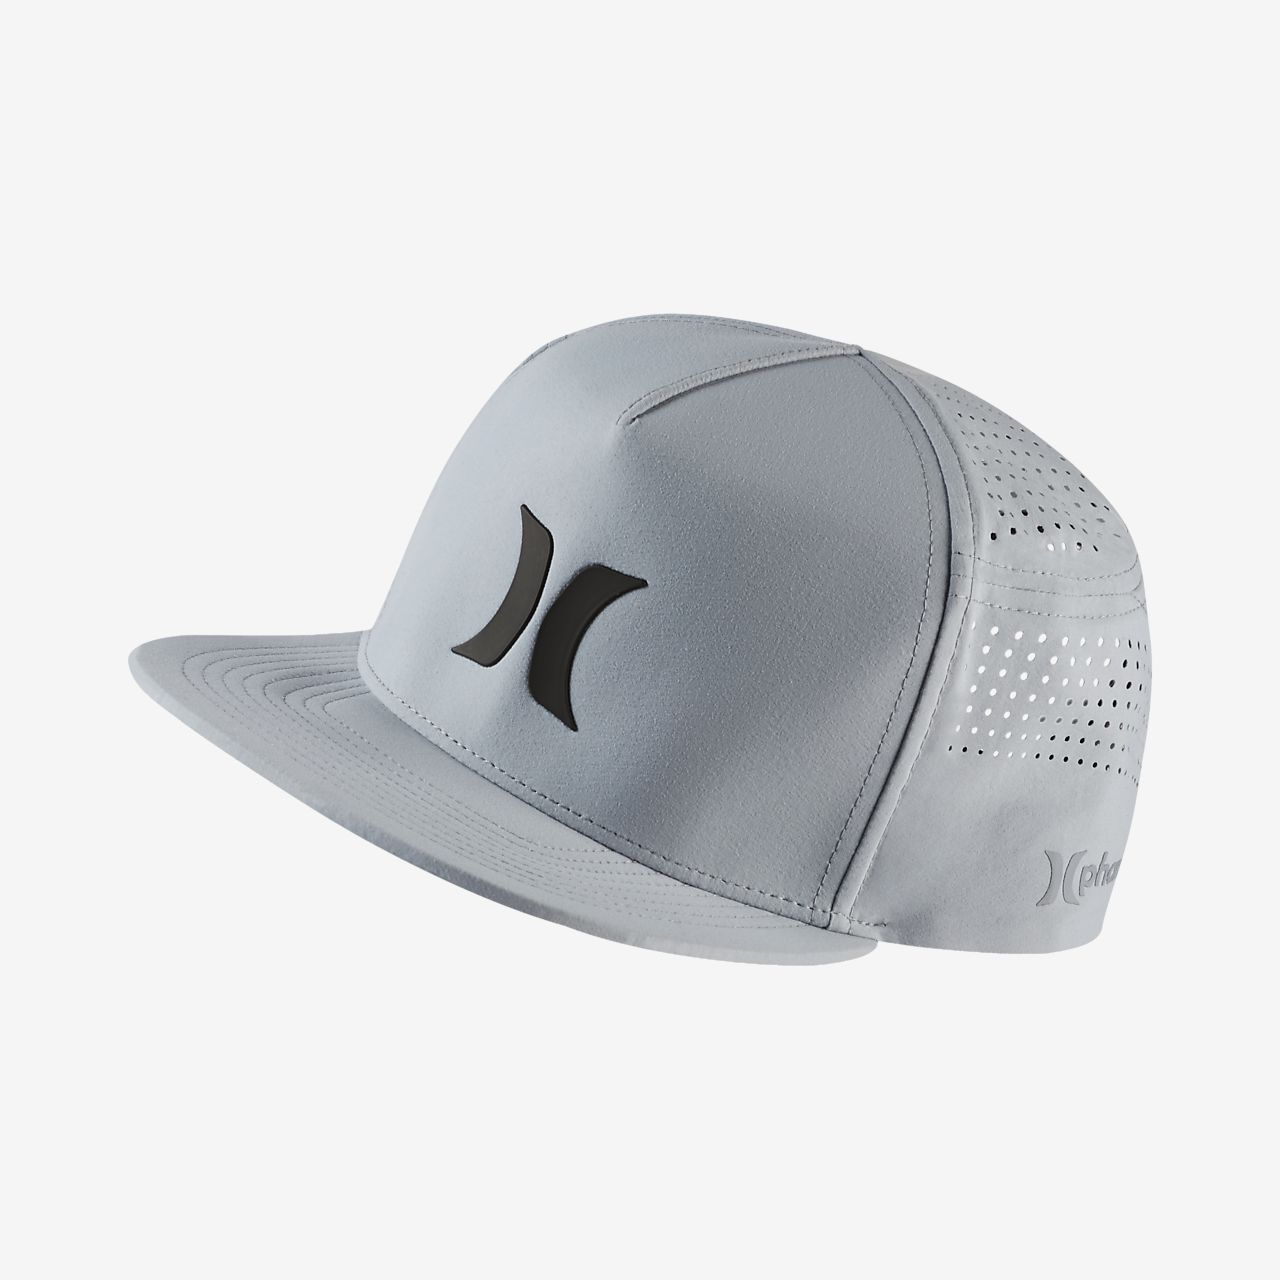 223dd1d1145 Hurley Phantom Flyer Men s Adjustable Hat. Nike.com HR